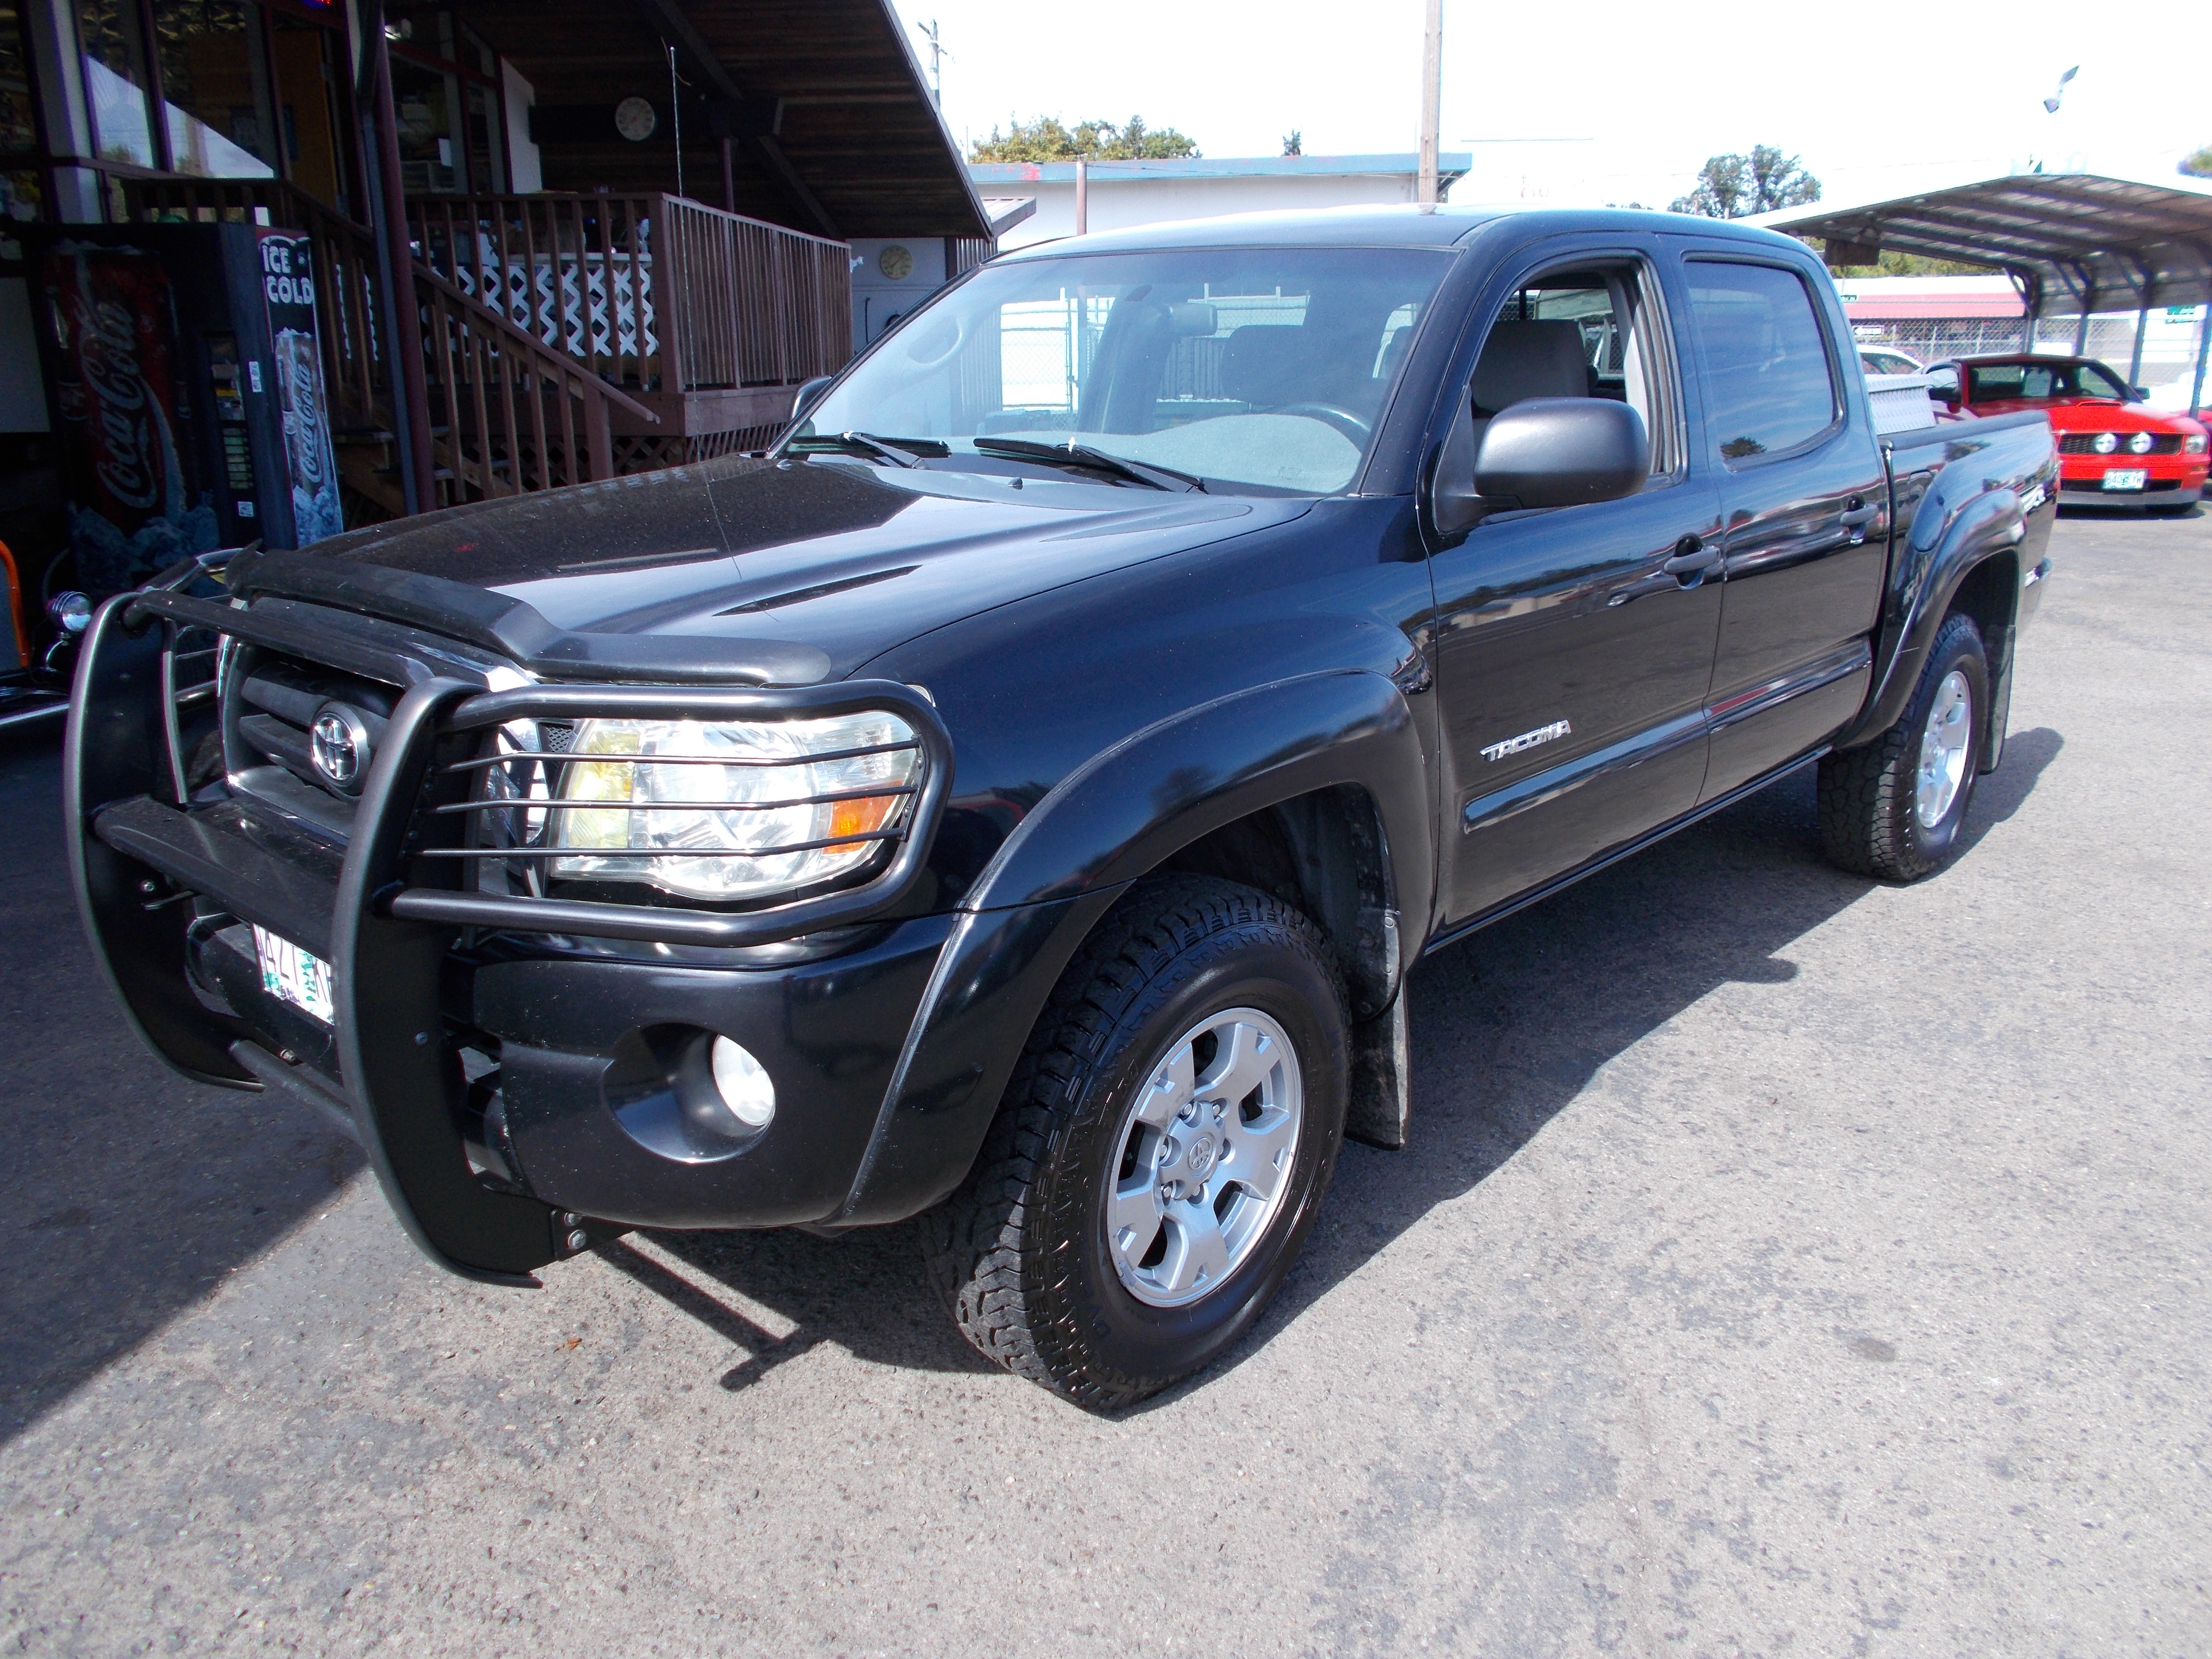 Hamilton 2005 Tacoma Fuel Filter Toyota Double Cab 4x4 40 Liter V 6 Auto Transmission 154828 Miles Real Clean Gray Cloth Interior Paint And Body In Very Good Condition